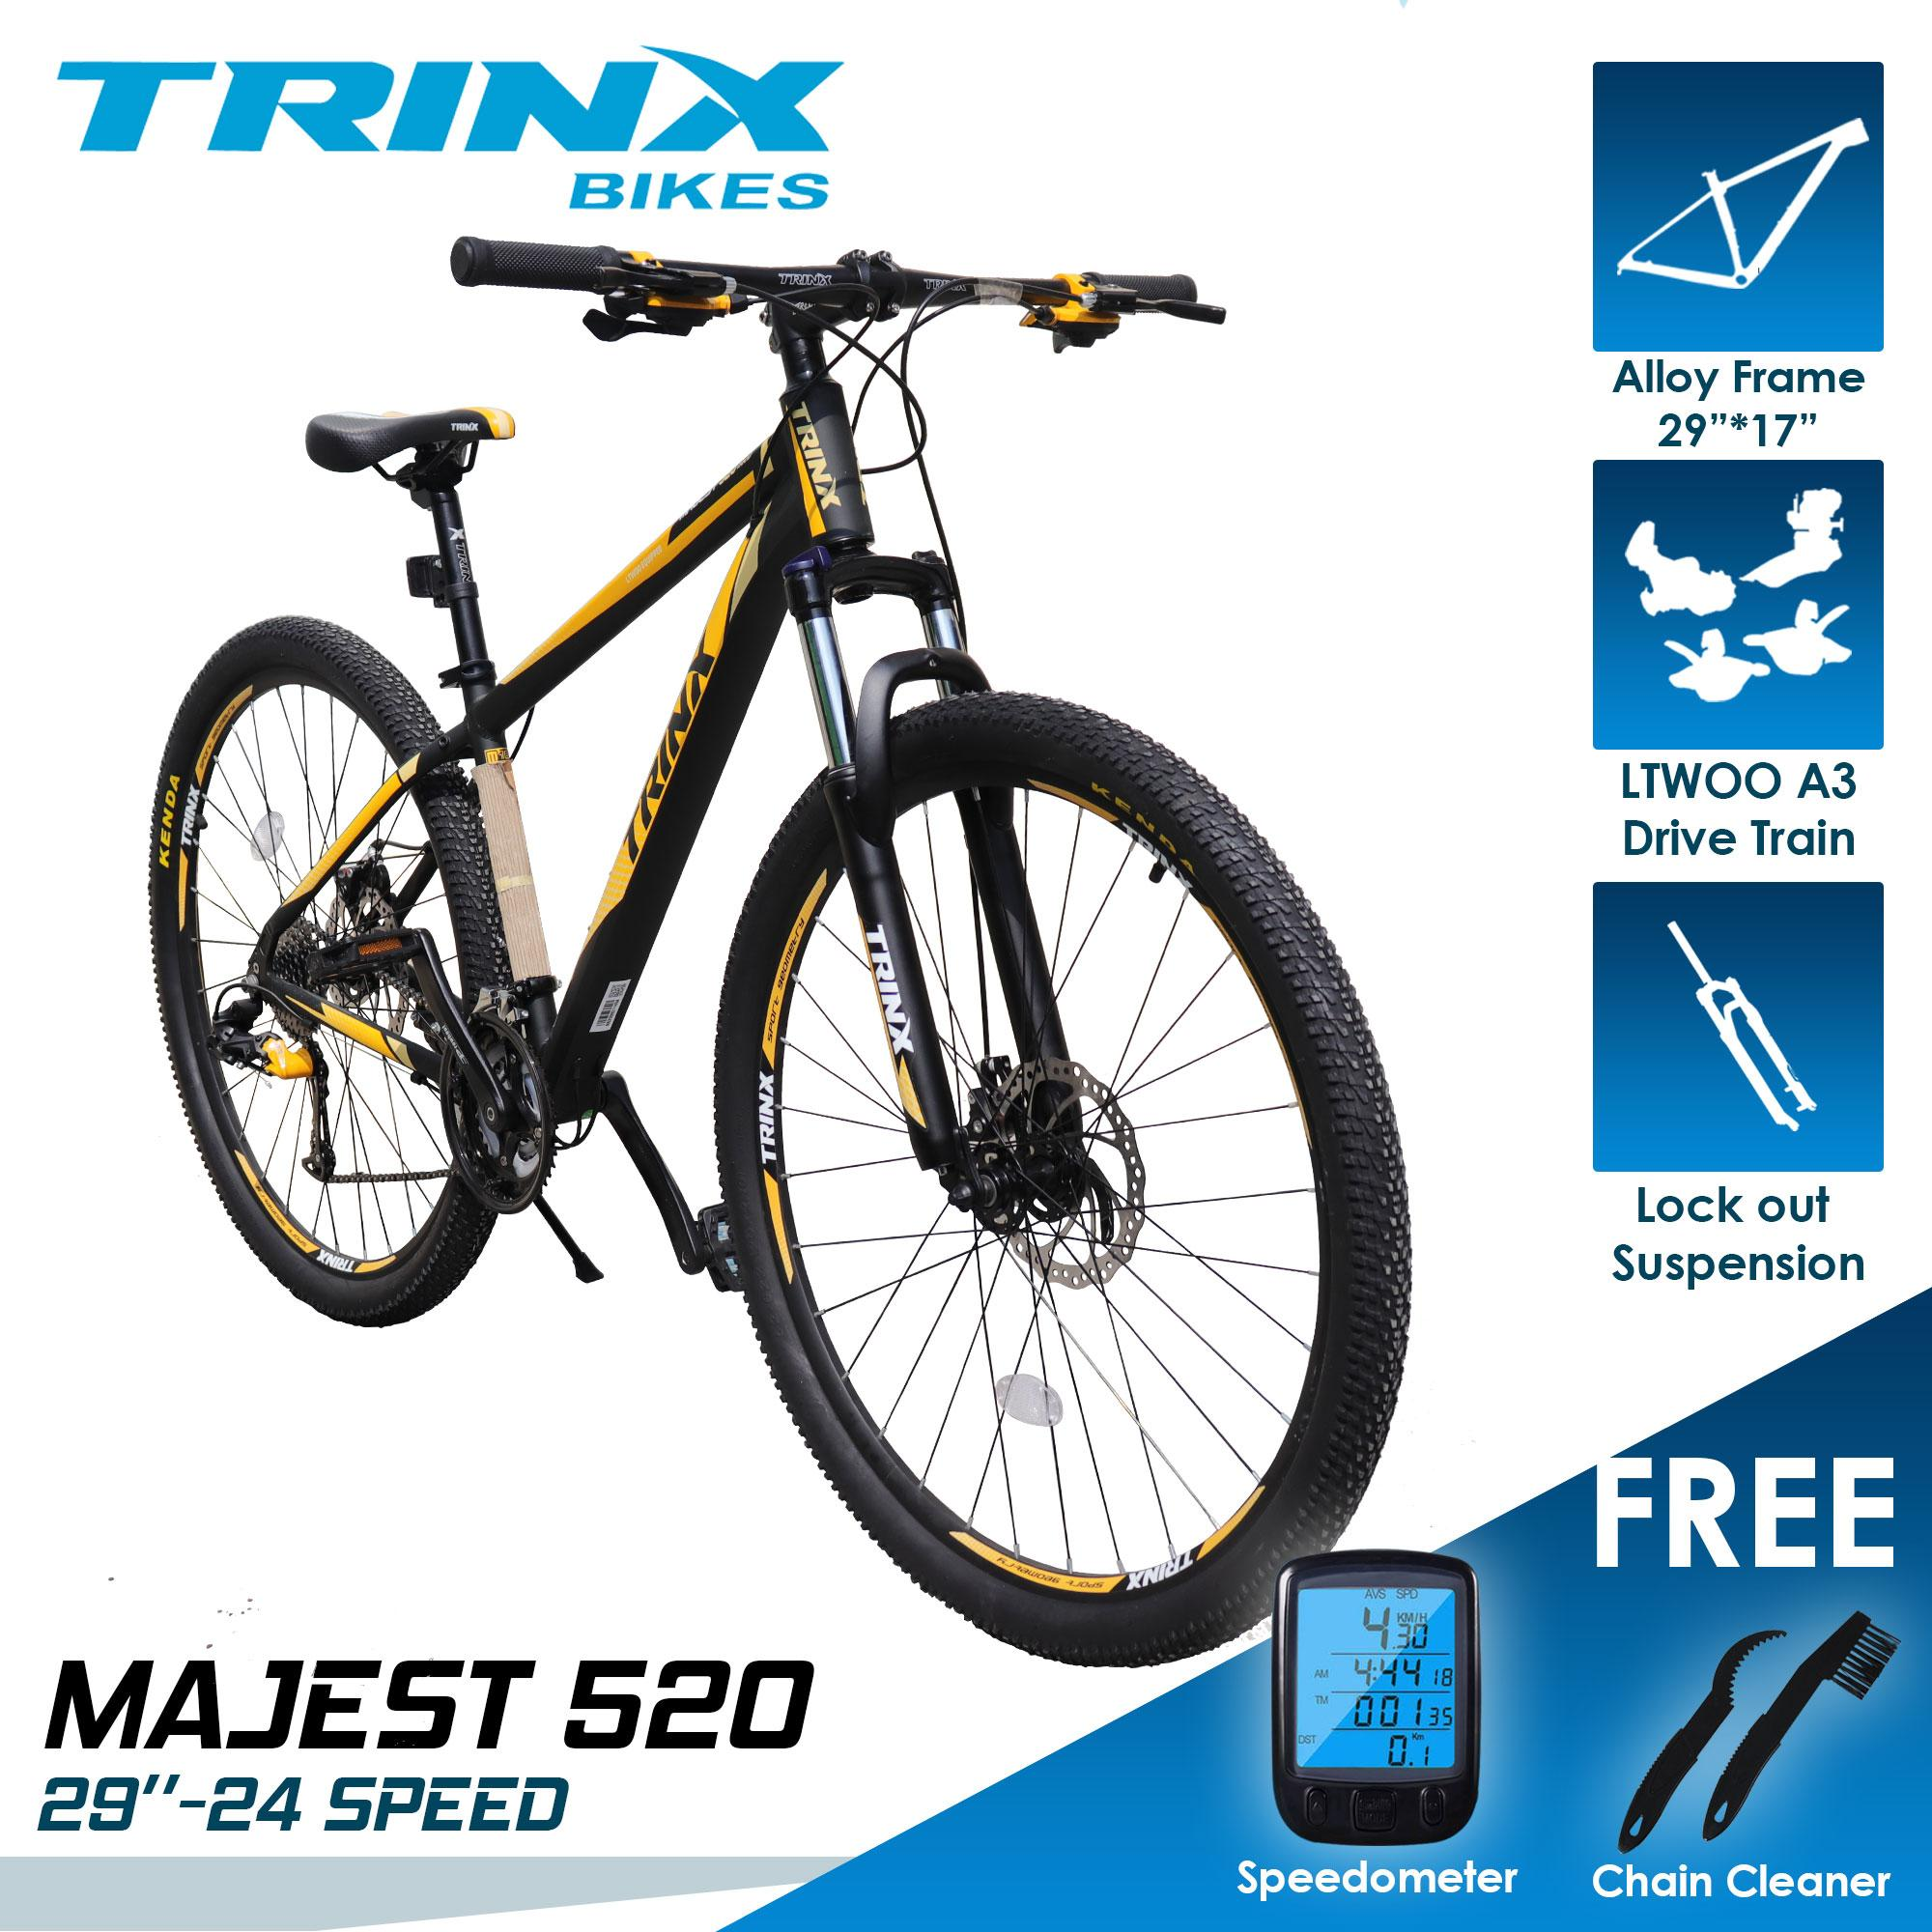 39f9d2d27 TRINX M520 29er- 24 SPEED LTWOO GROUPSET with FREE WIRELESS SPEEDOMETER and  2 in 1